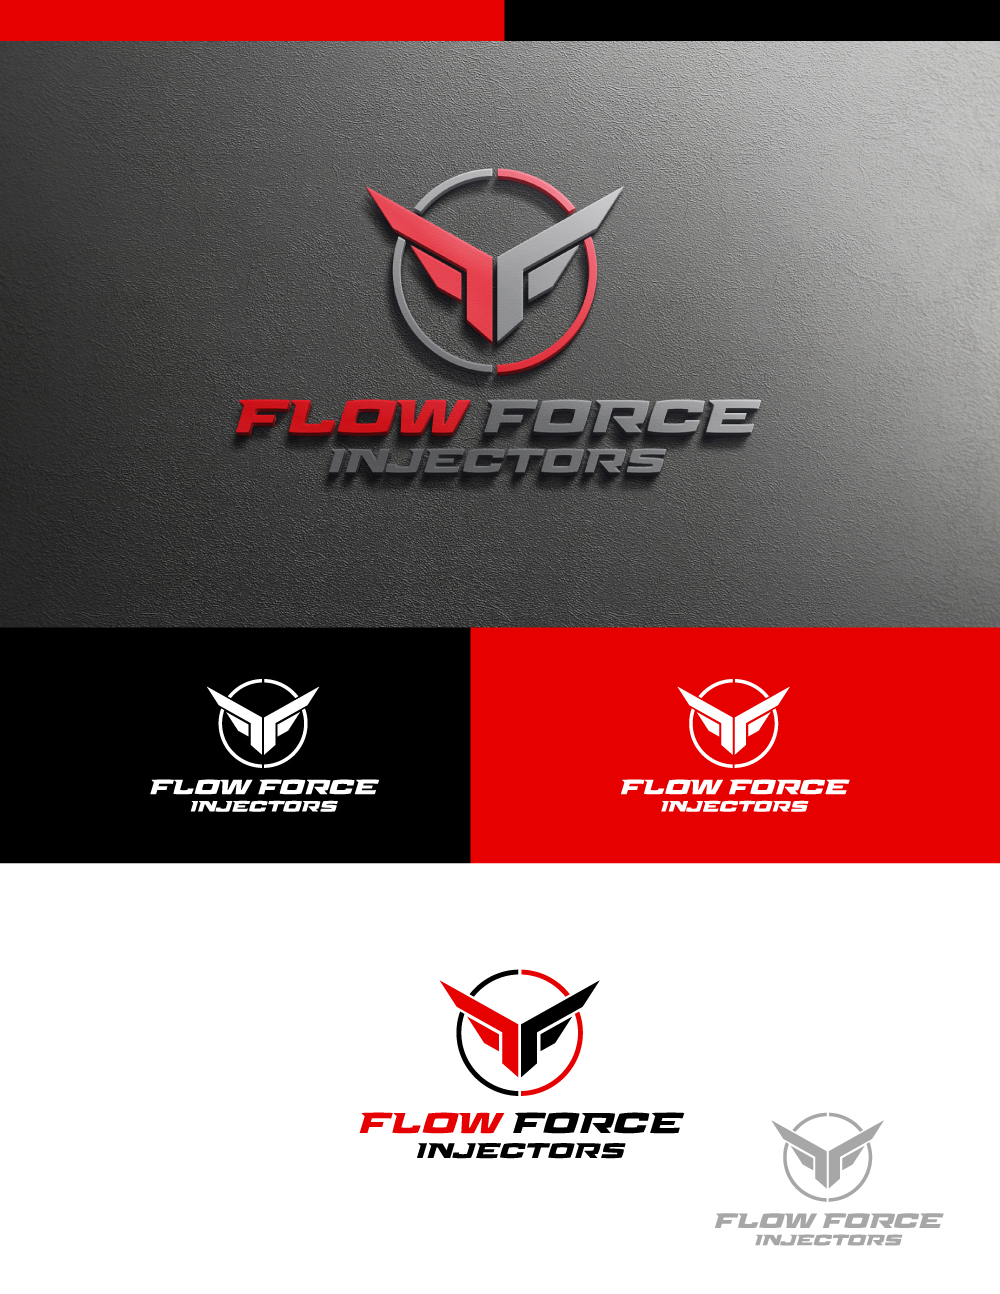 Logo Design by Tauhid Shaikh - Entry No. 28 in the Logo Design Contest Fun Logo Design for Flow Force Injectors.